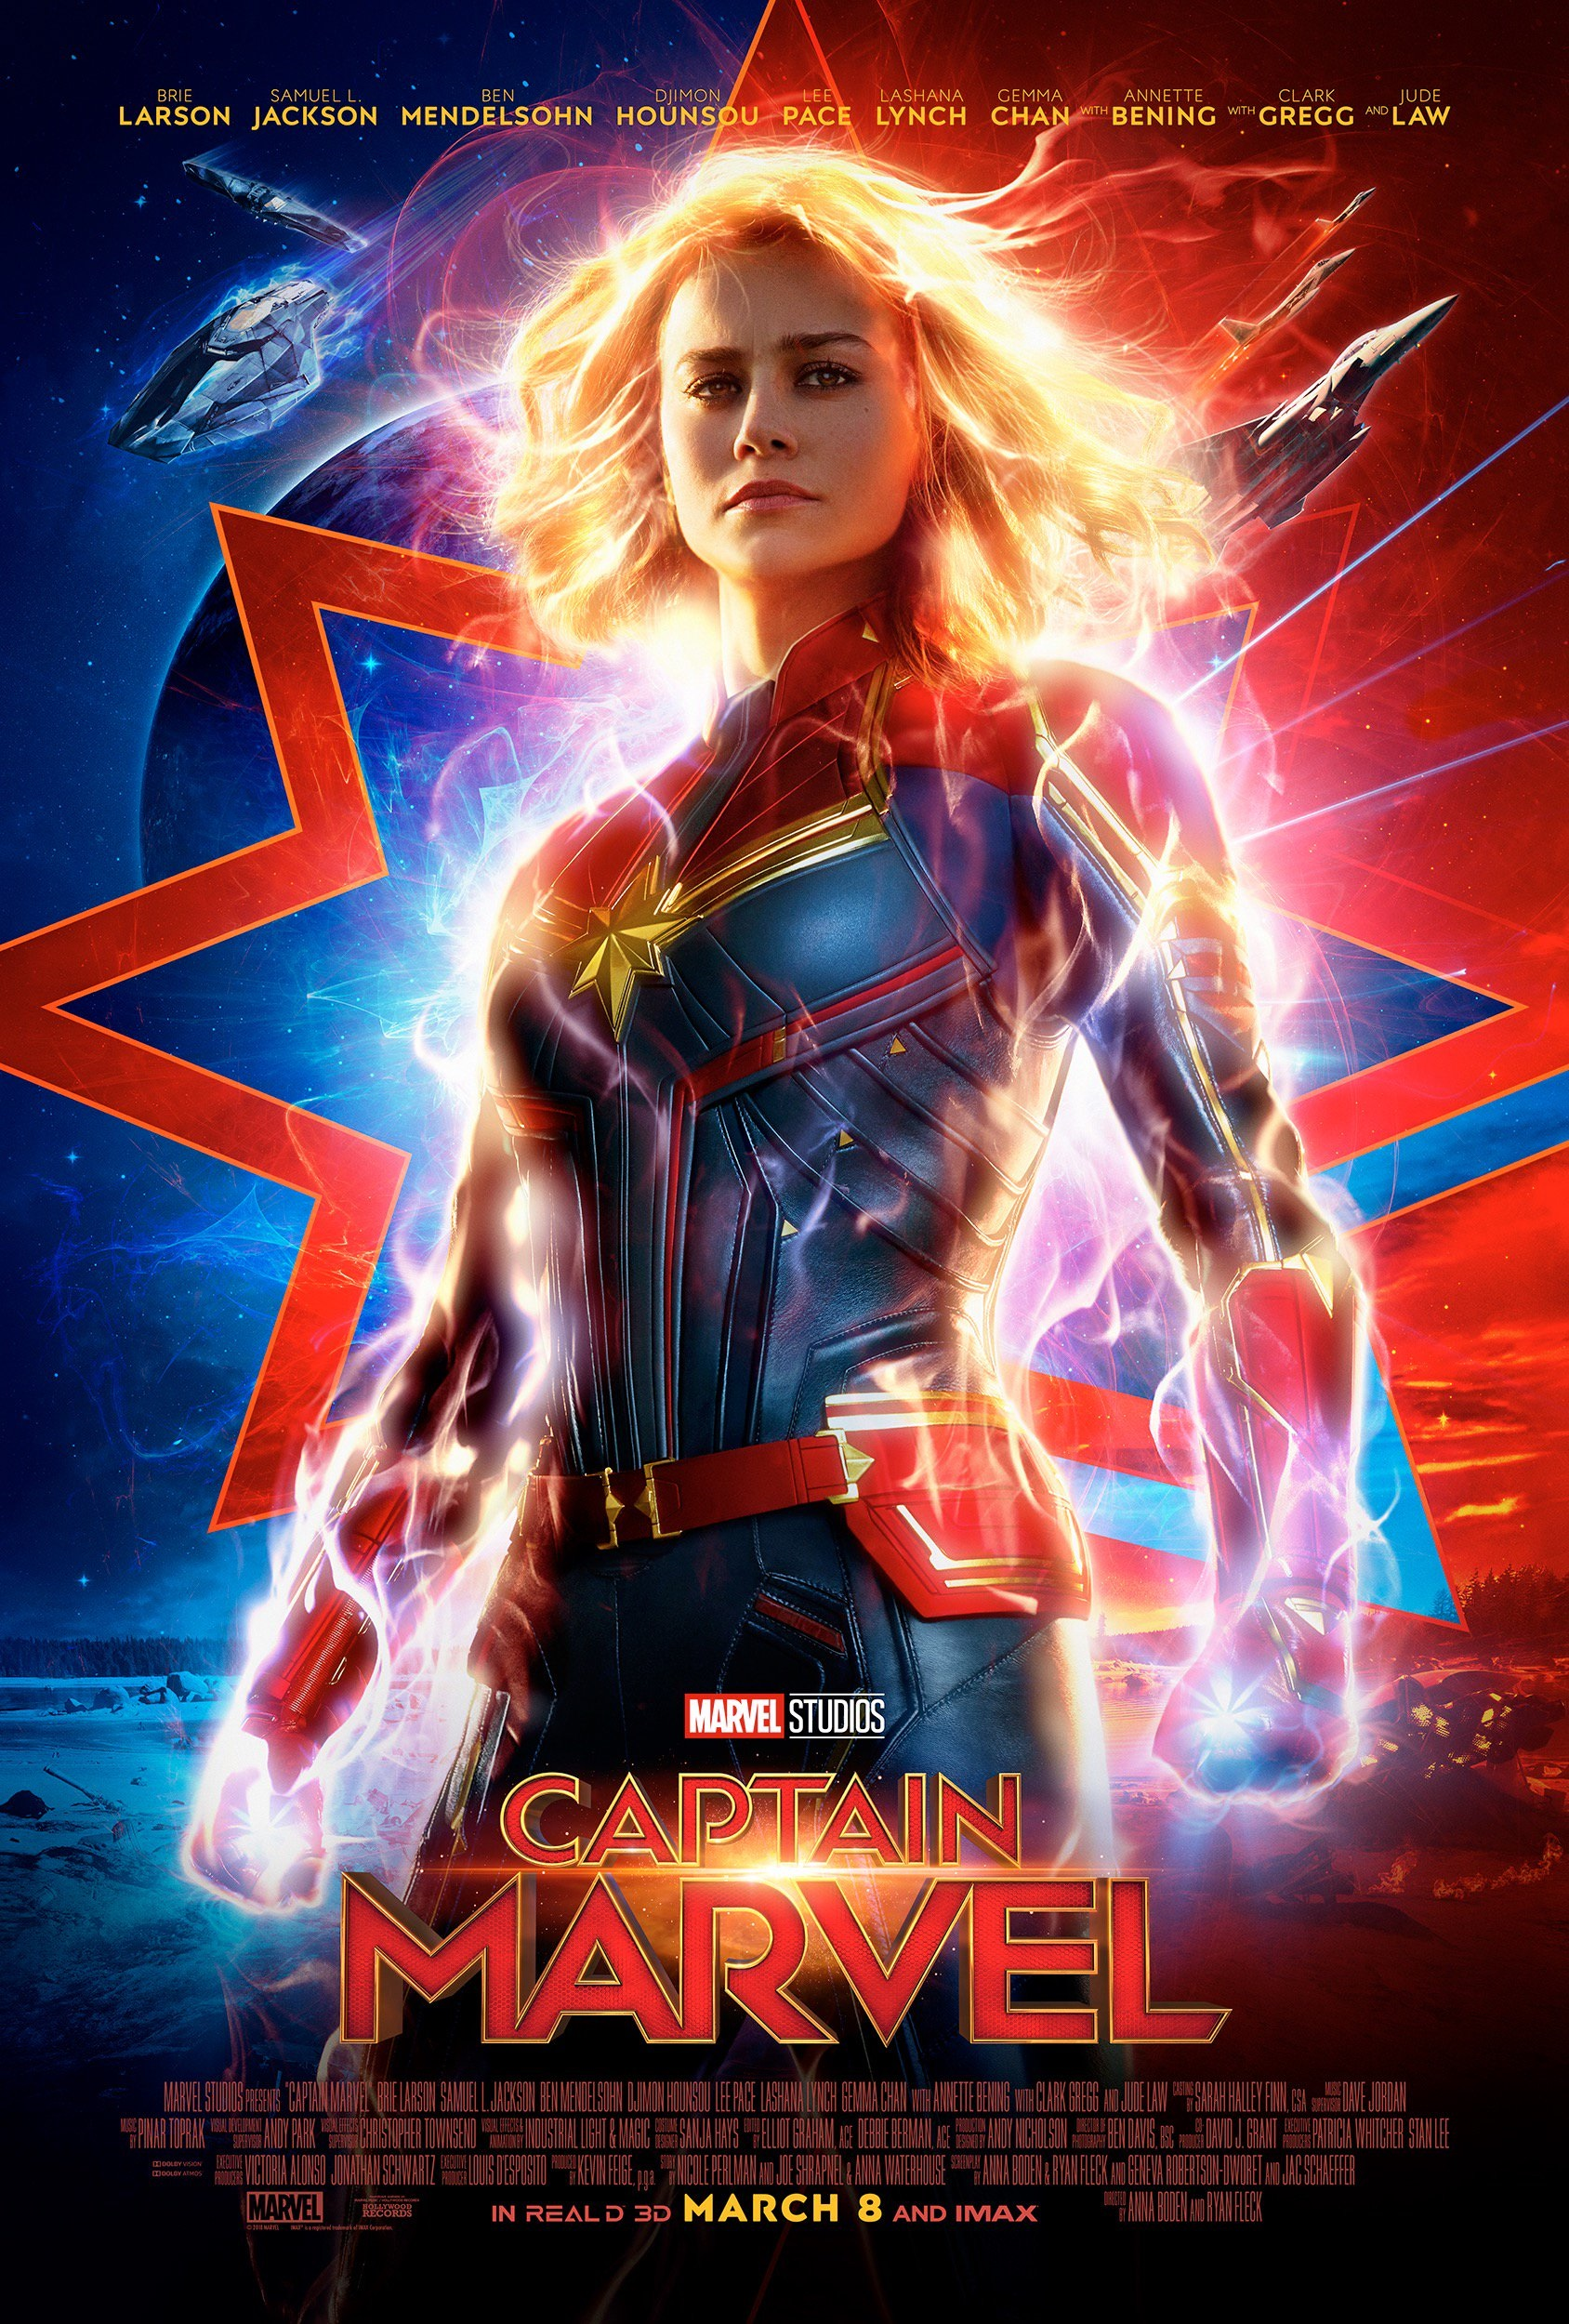 New poster for Captain Marvel